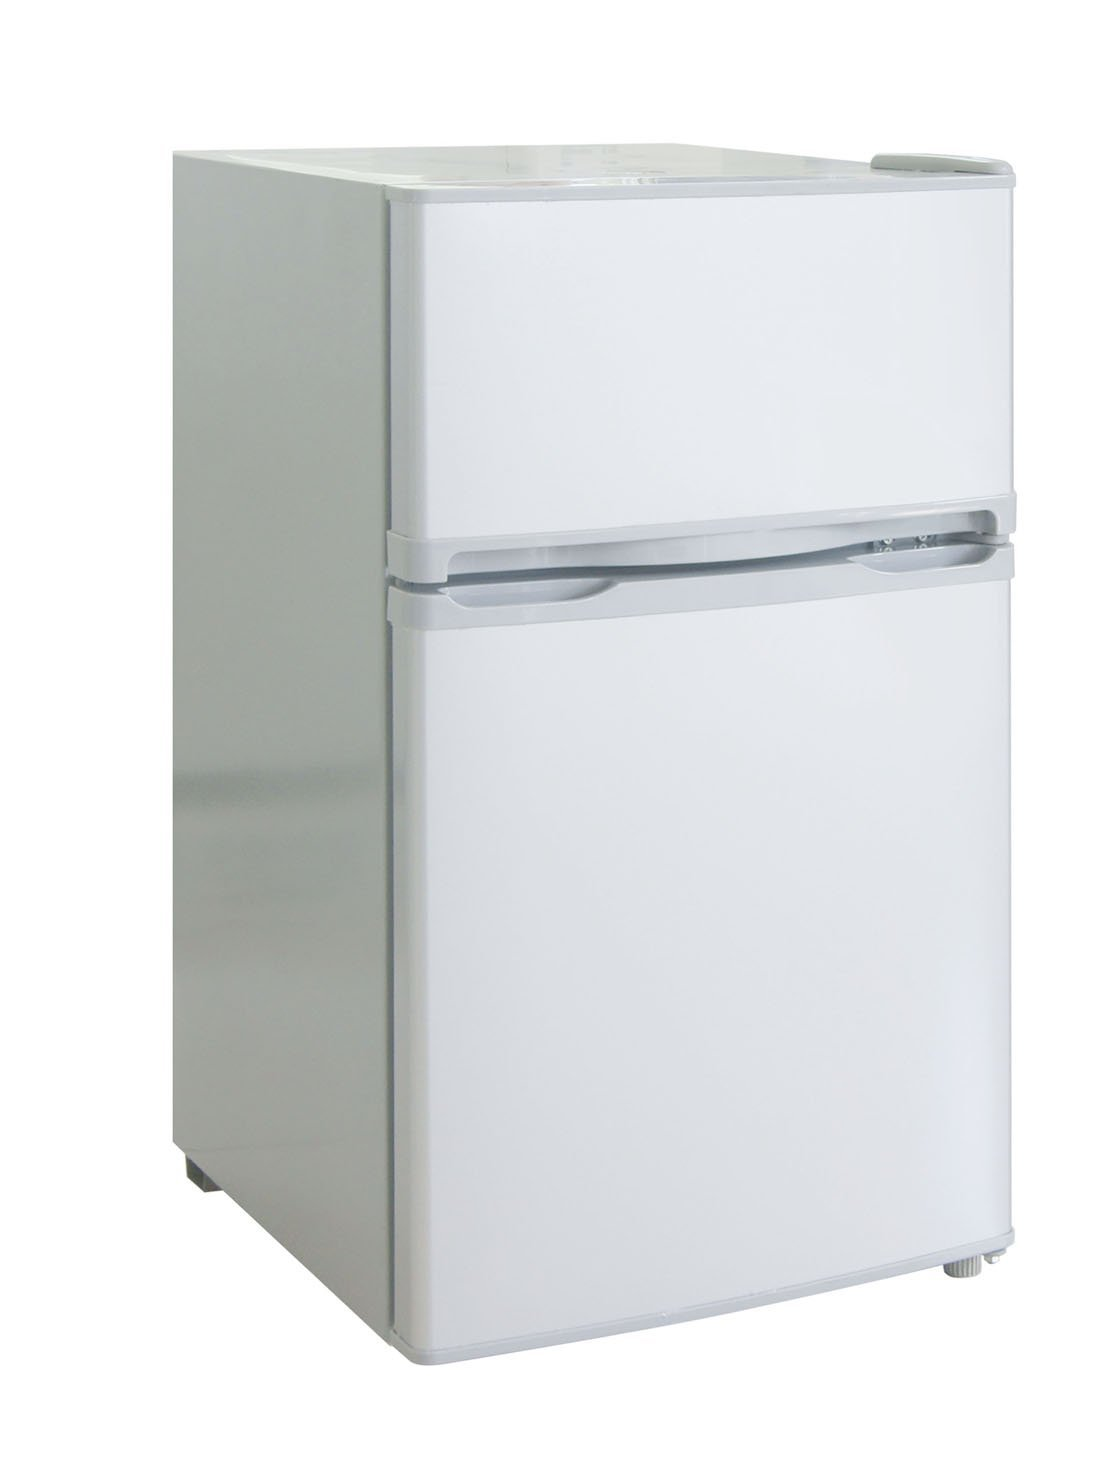 RCA-Igloo 3.2 Cubic Foot 2 Door Fridge and Freezer